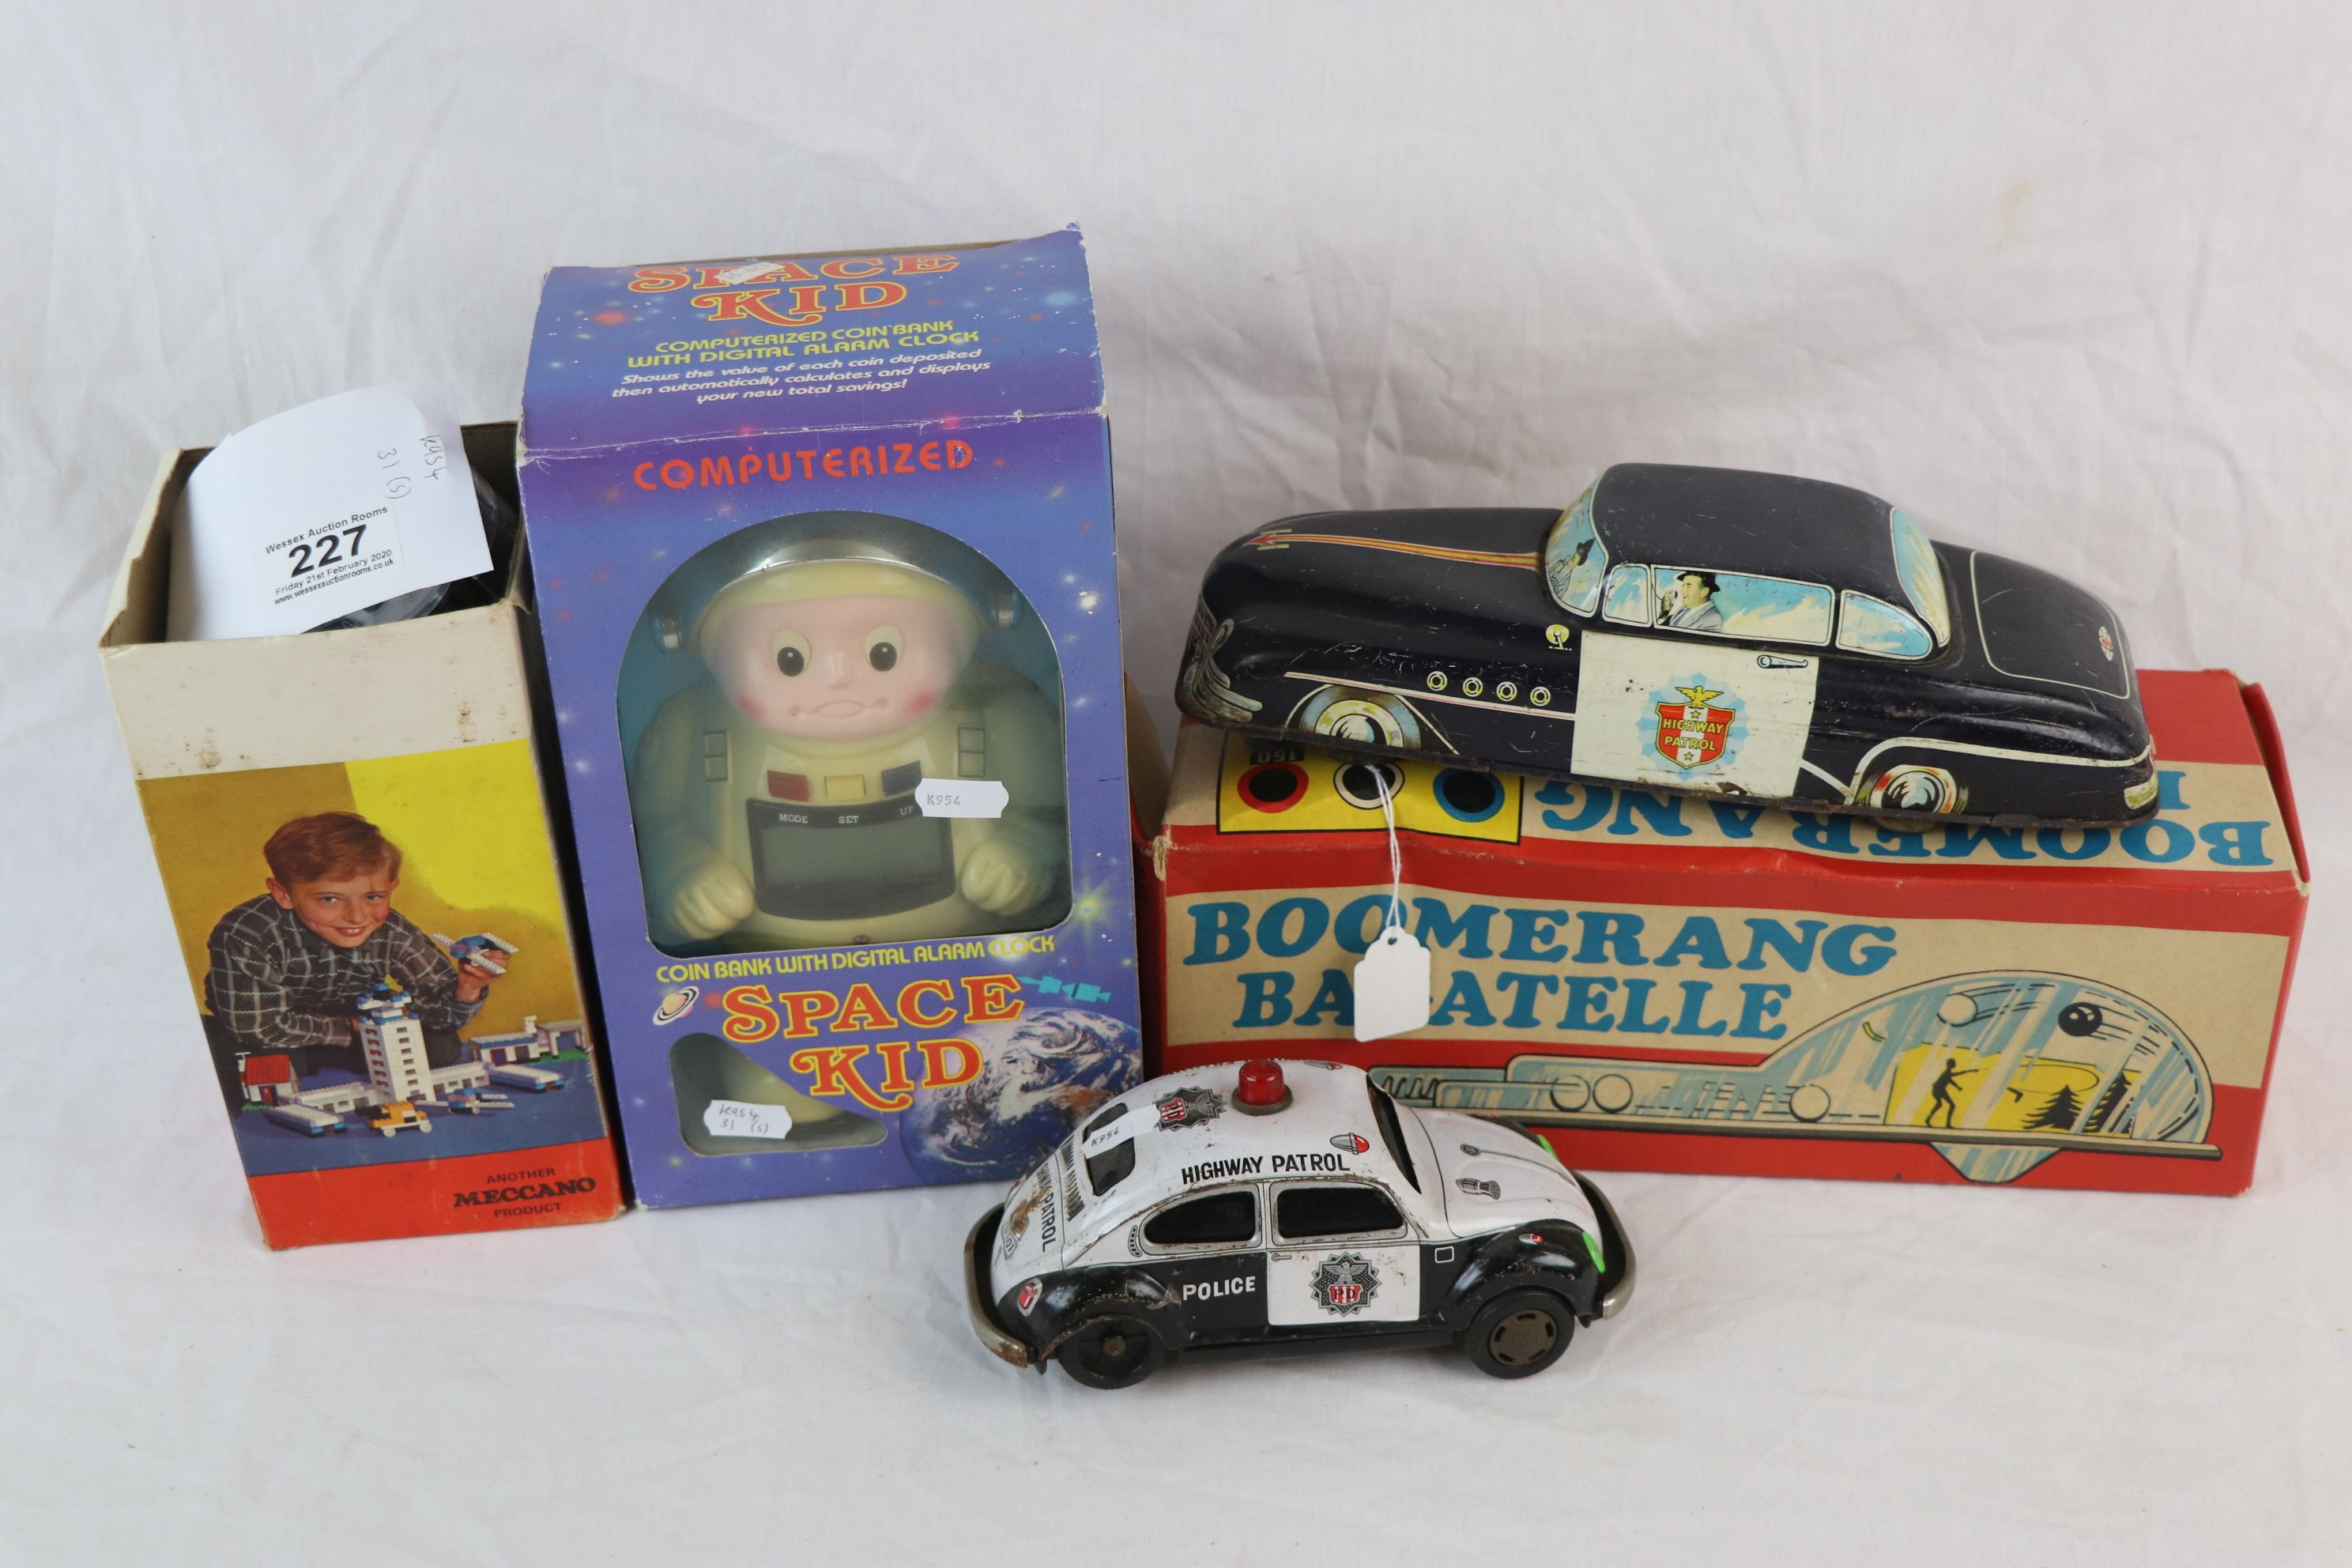 Lot 227 - Boxed Cousins & Hsuehes International Space Kid coin bank with digital alarm clock computerized (box